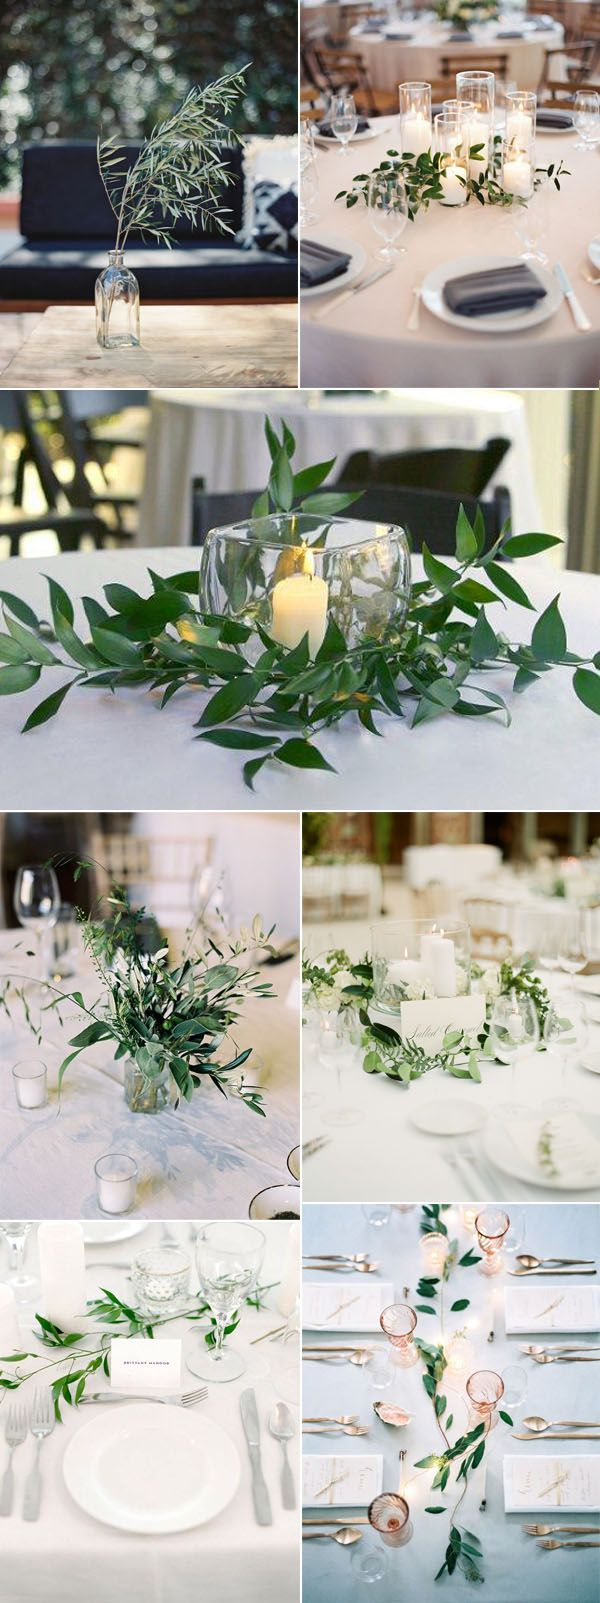 156 best wedding centerpieces images on pinterest flower creative botanical wedding table centerpieces for minimalist weddings junglespirit